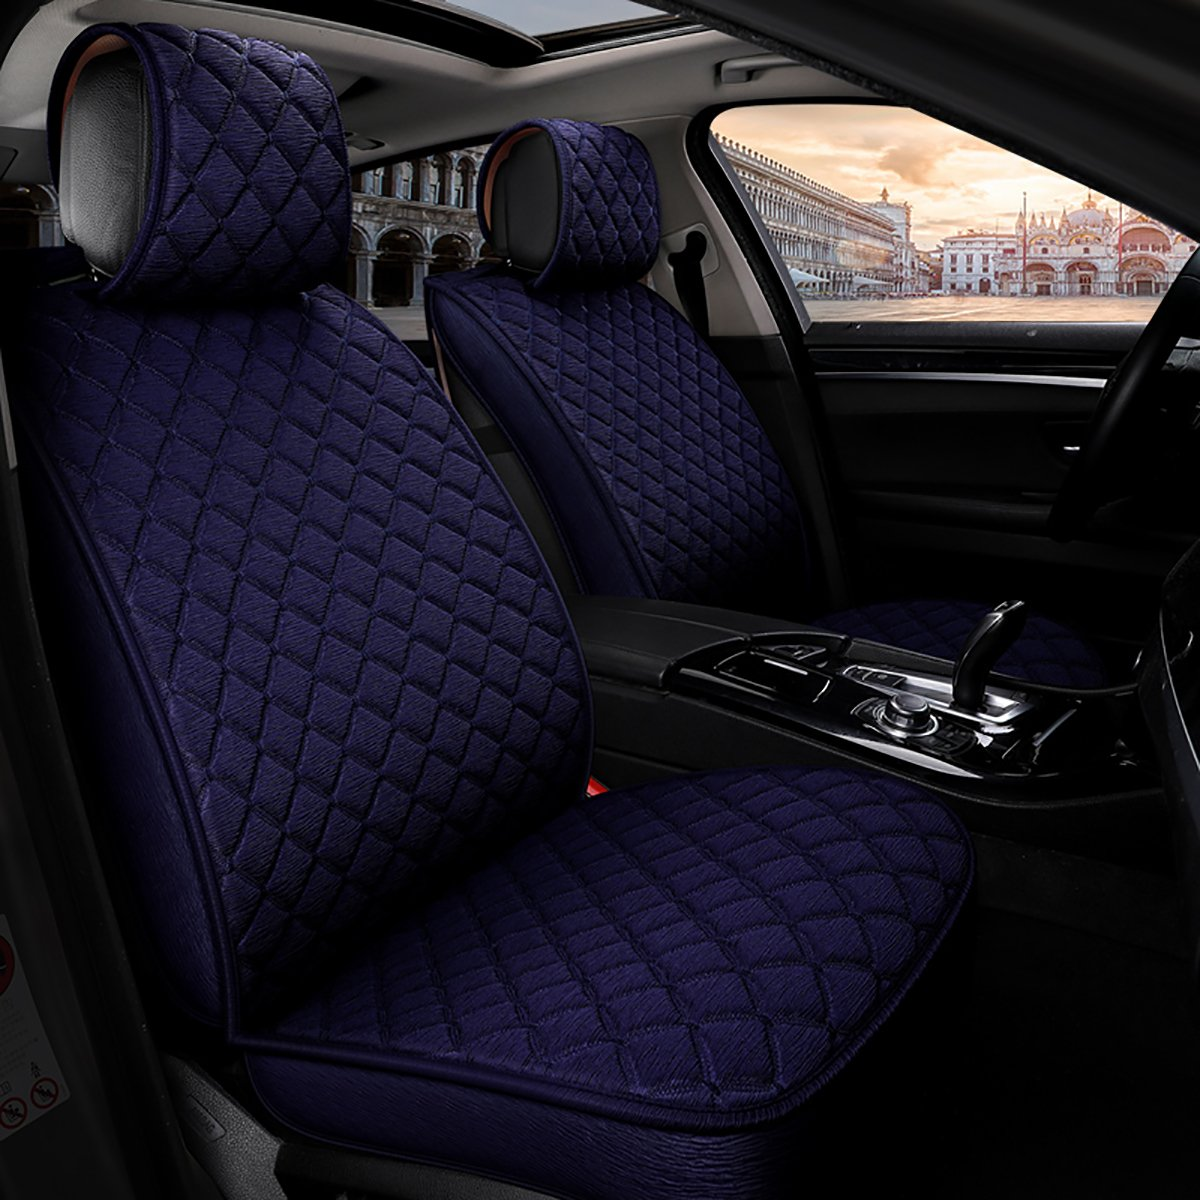 INCH EMPIRE Anti Slip Car Seat Cover Full Set Cloth Universal Fit Front and Back Breathable Dirty Proof Fabric Cushion-Adjustable Bench for 95% Types of 5 Seats Cars(Blue with Stich Grid)